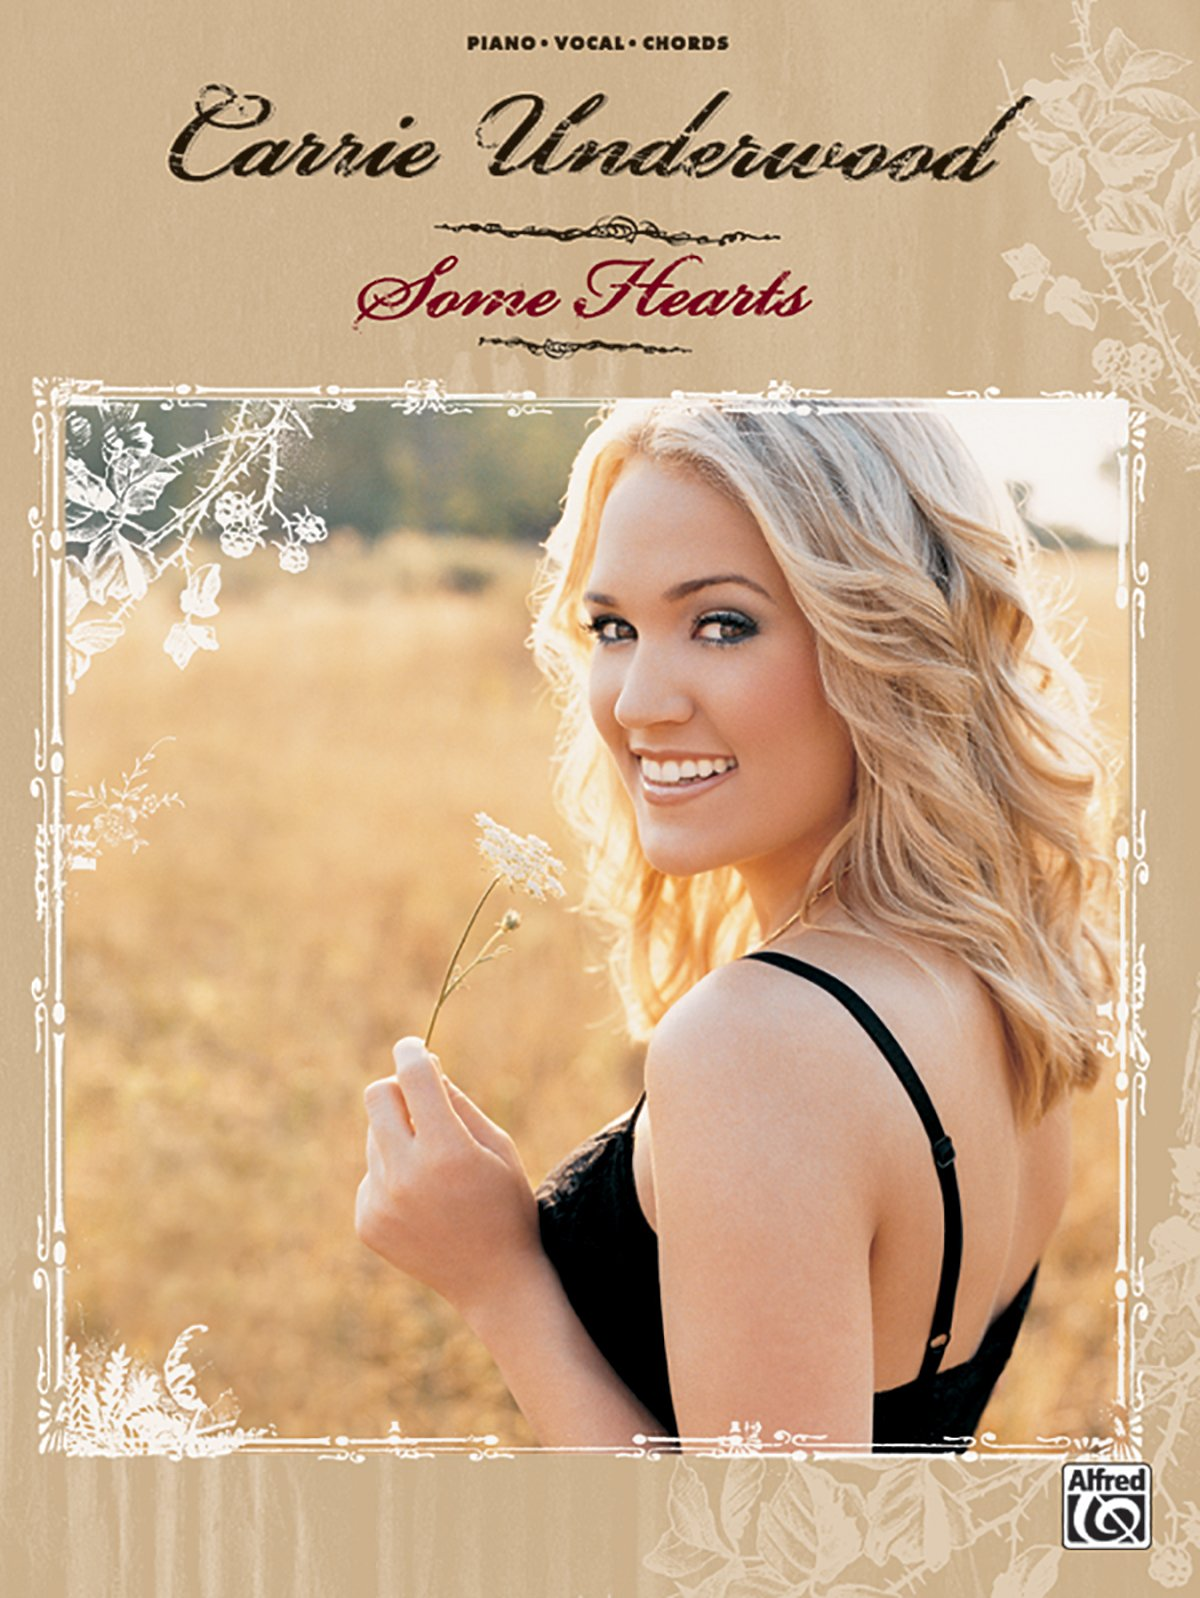 Some Hearts Piano Vocal Chords Carrie Underwood 0038081280363